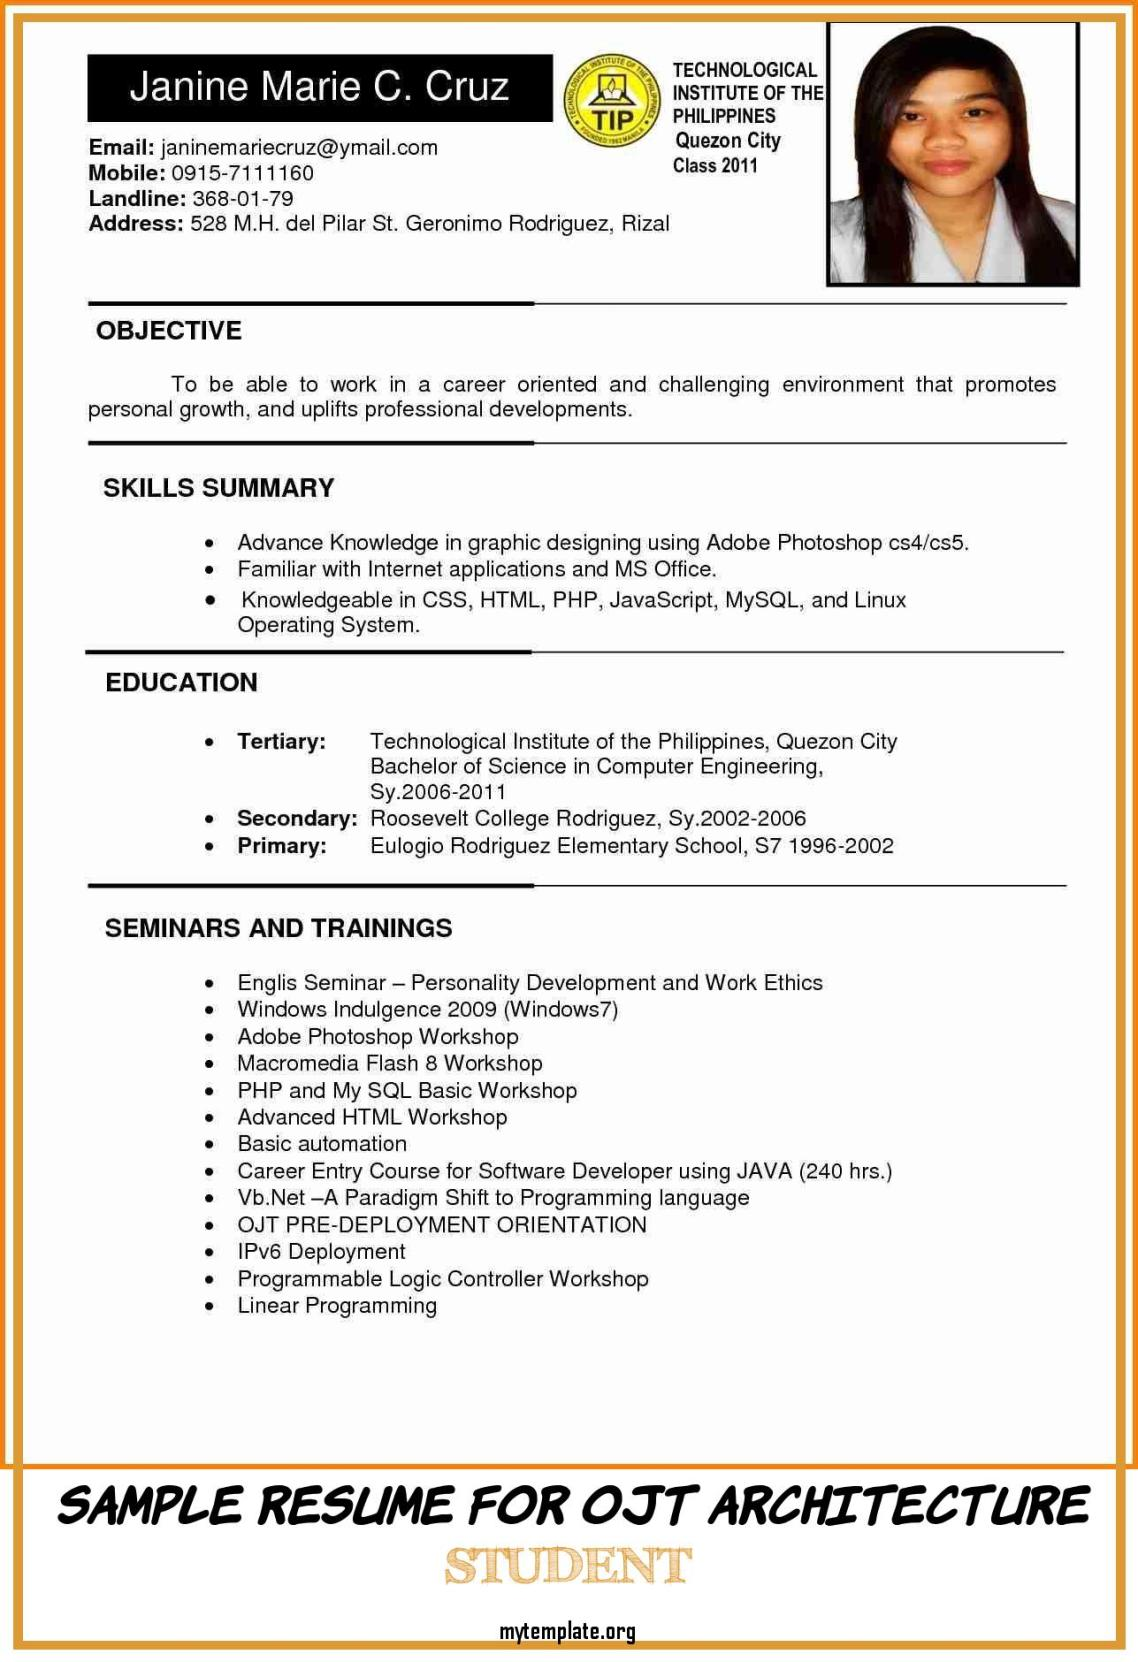 6 sample resume for ojt architecture student  free templates